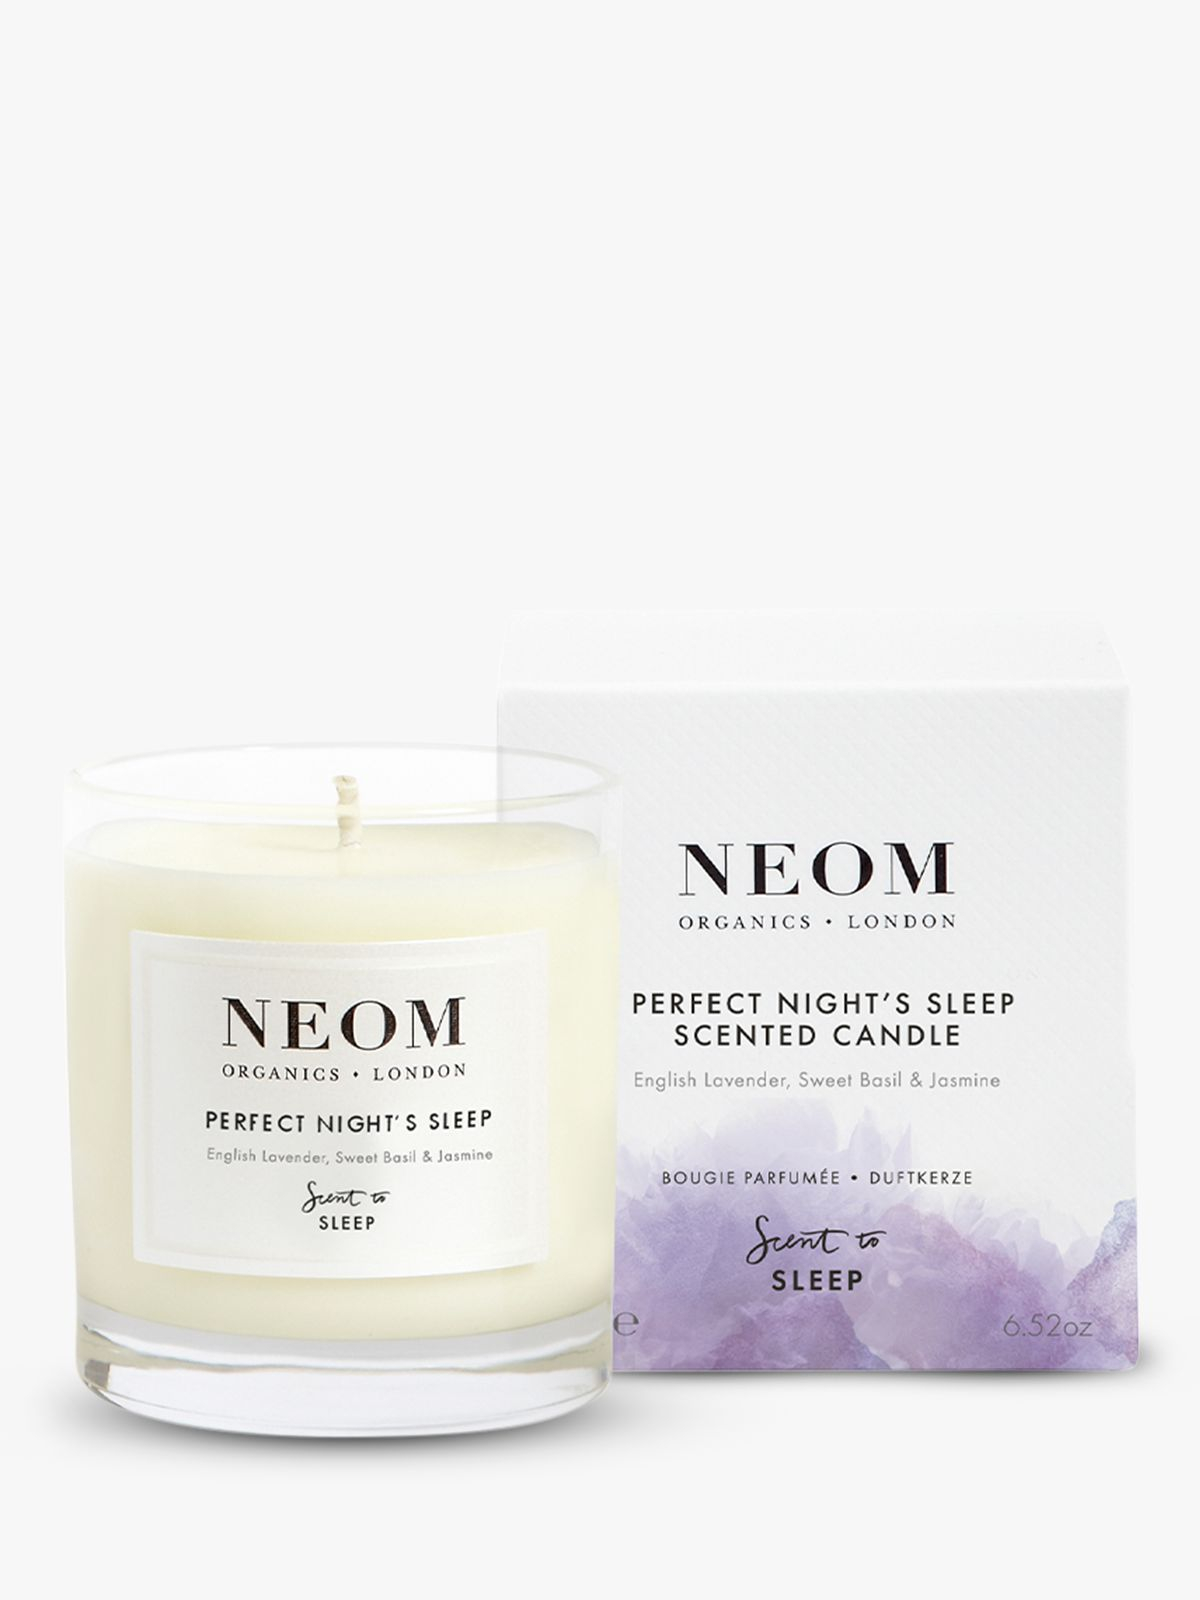 Neom Neom Tranquility Standard Candle, 185g